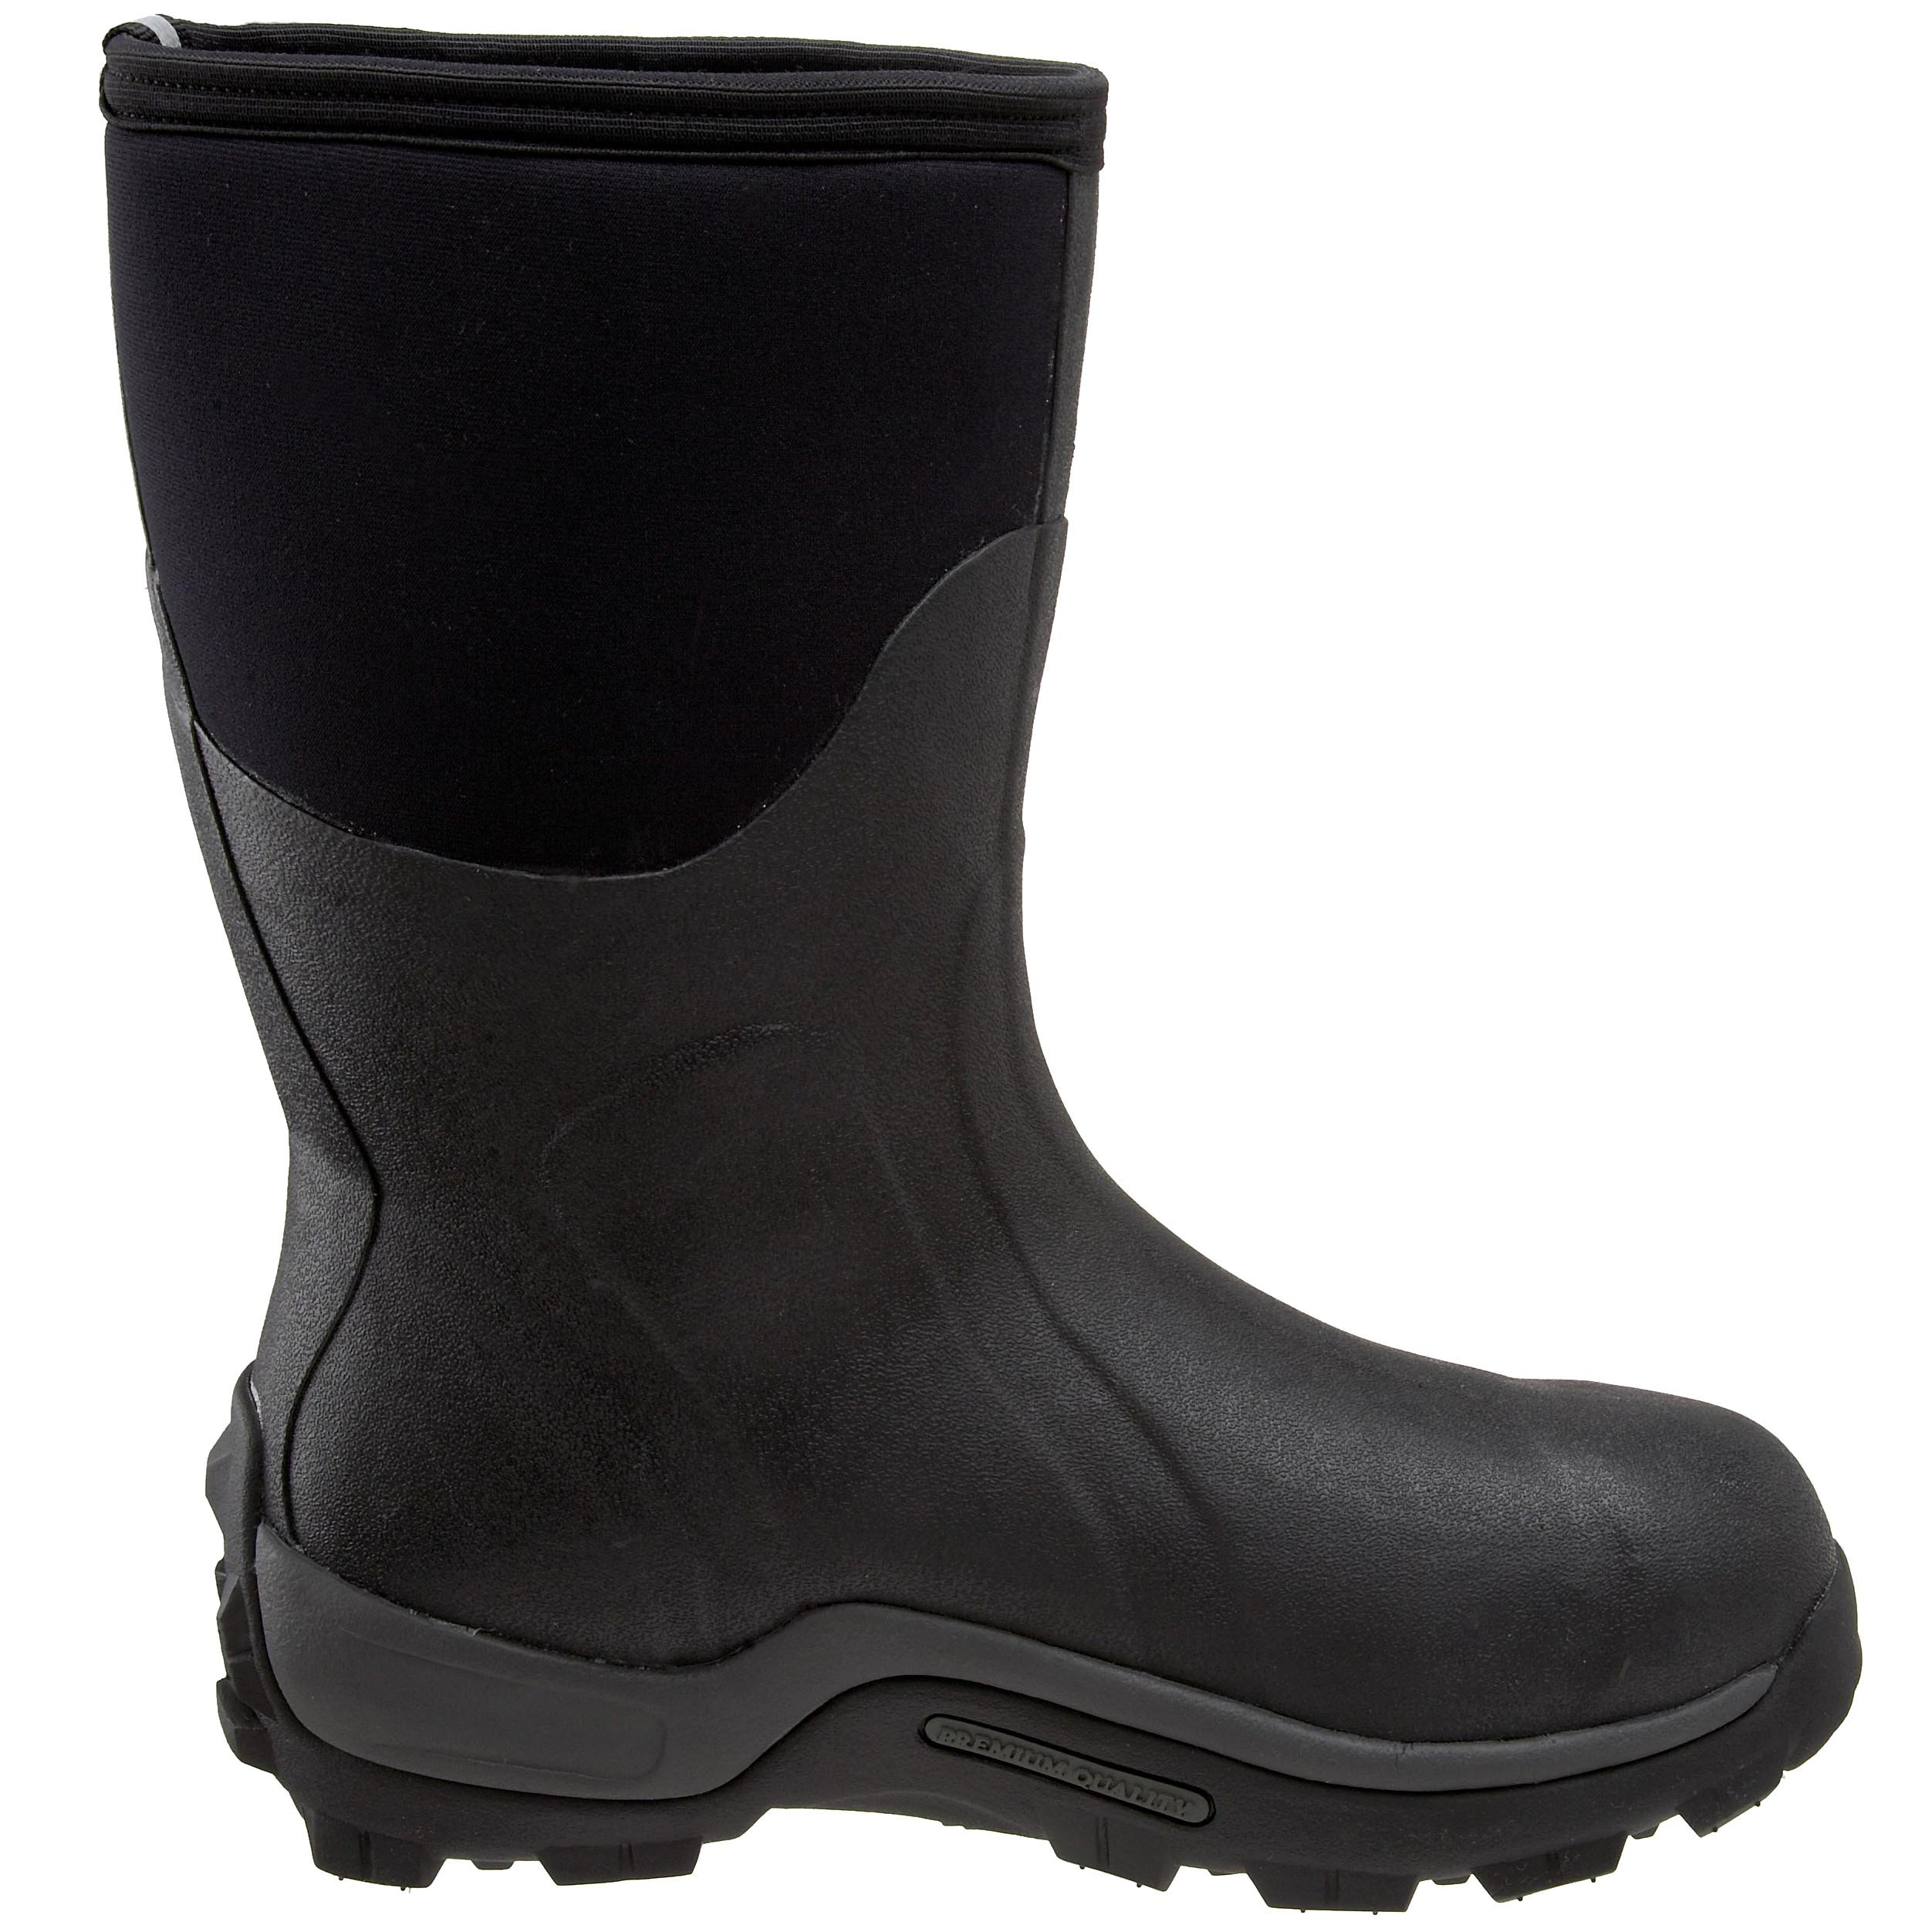 The Original MuckBoots Arctic Sport Mid Outdoor Boot,Black,12 M US Mens/13 M US Womens by Muck Boot (Image #6)